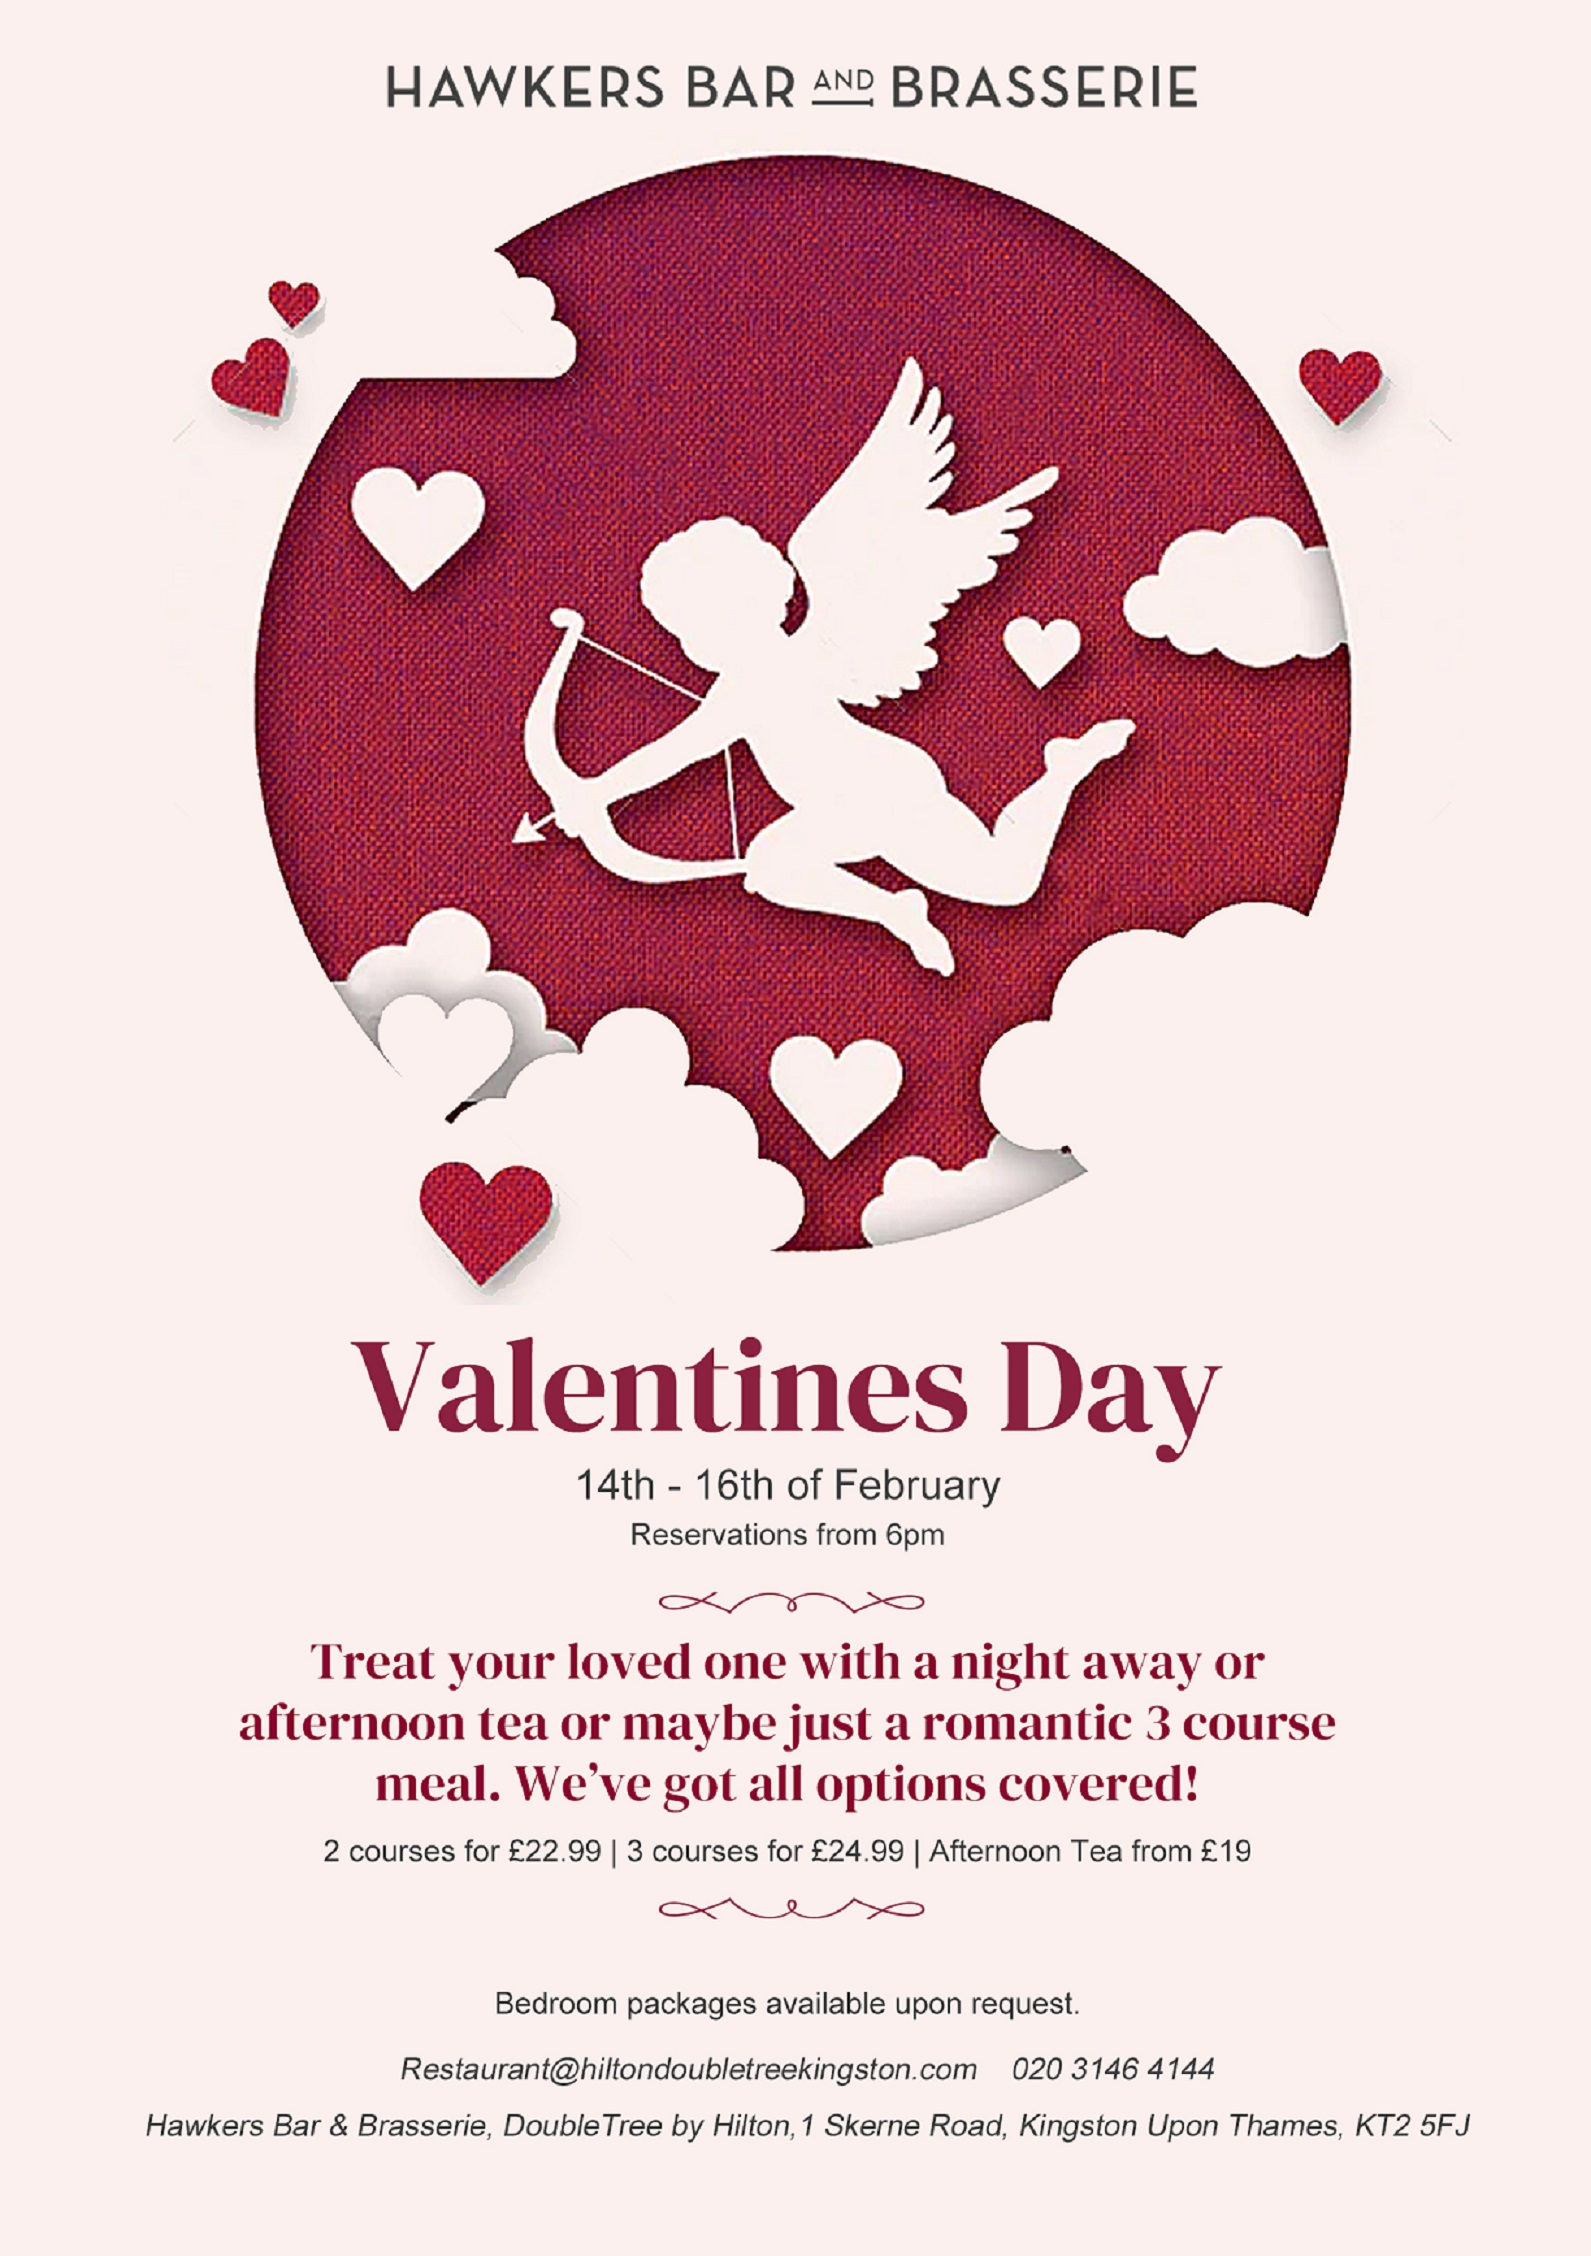 Make the most of the Valentine's Weekend with DoubleTree by Hilton London Kingston-Upon Thames